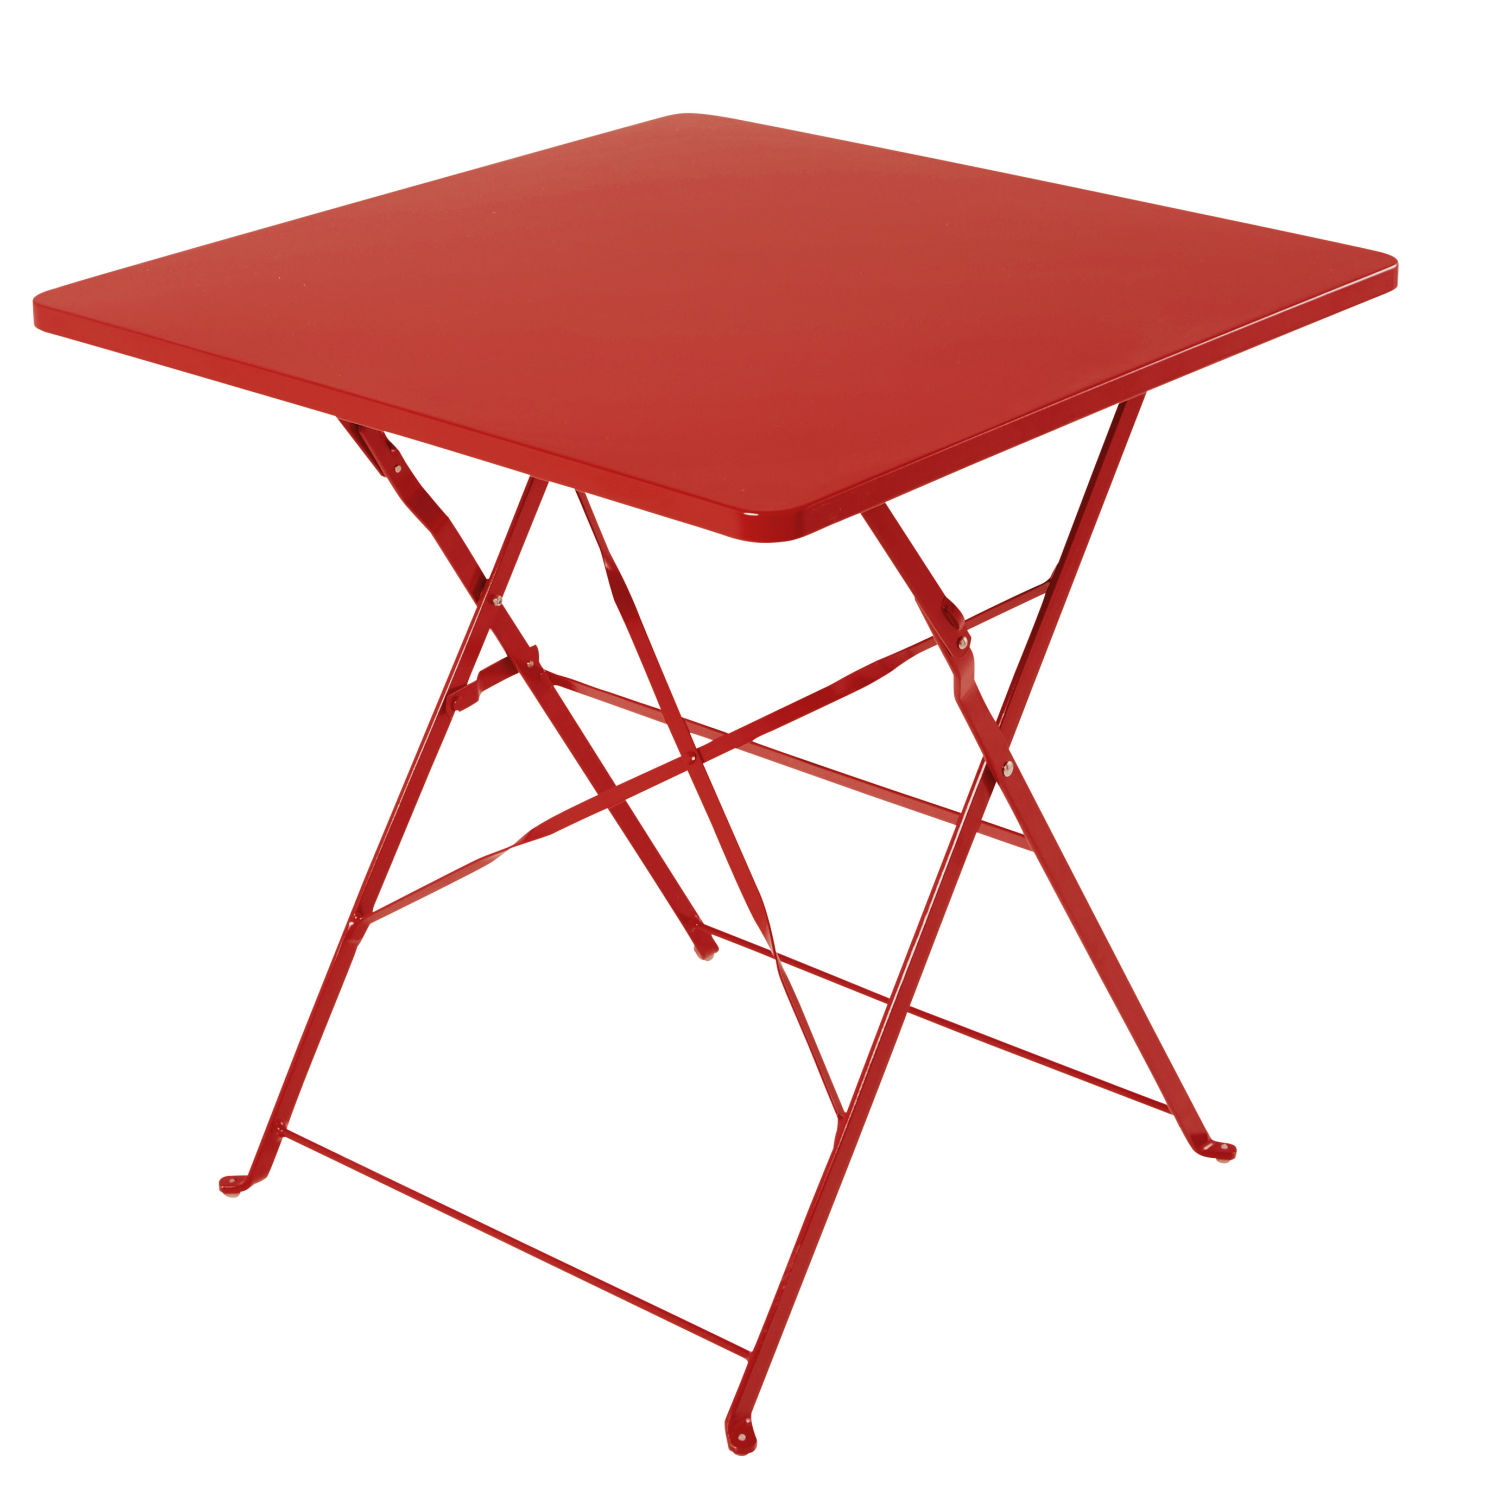 table de jardin pliante en m tal rouge 2 personnes l70 maisons du monde. Black Bedroom Furniture Sets. Home Design Ideas